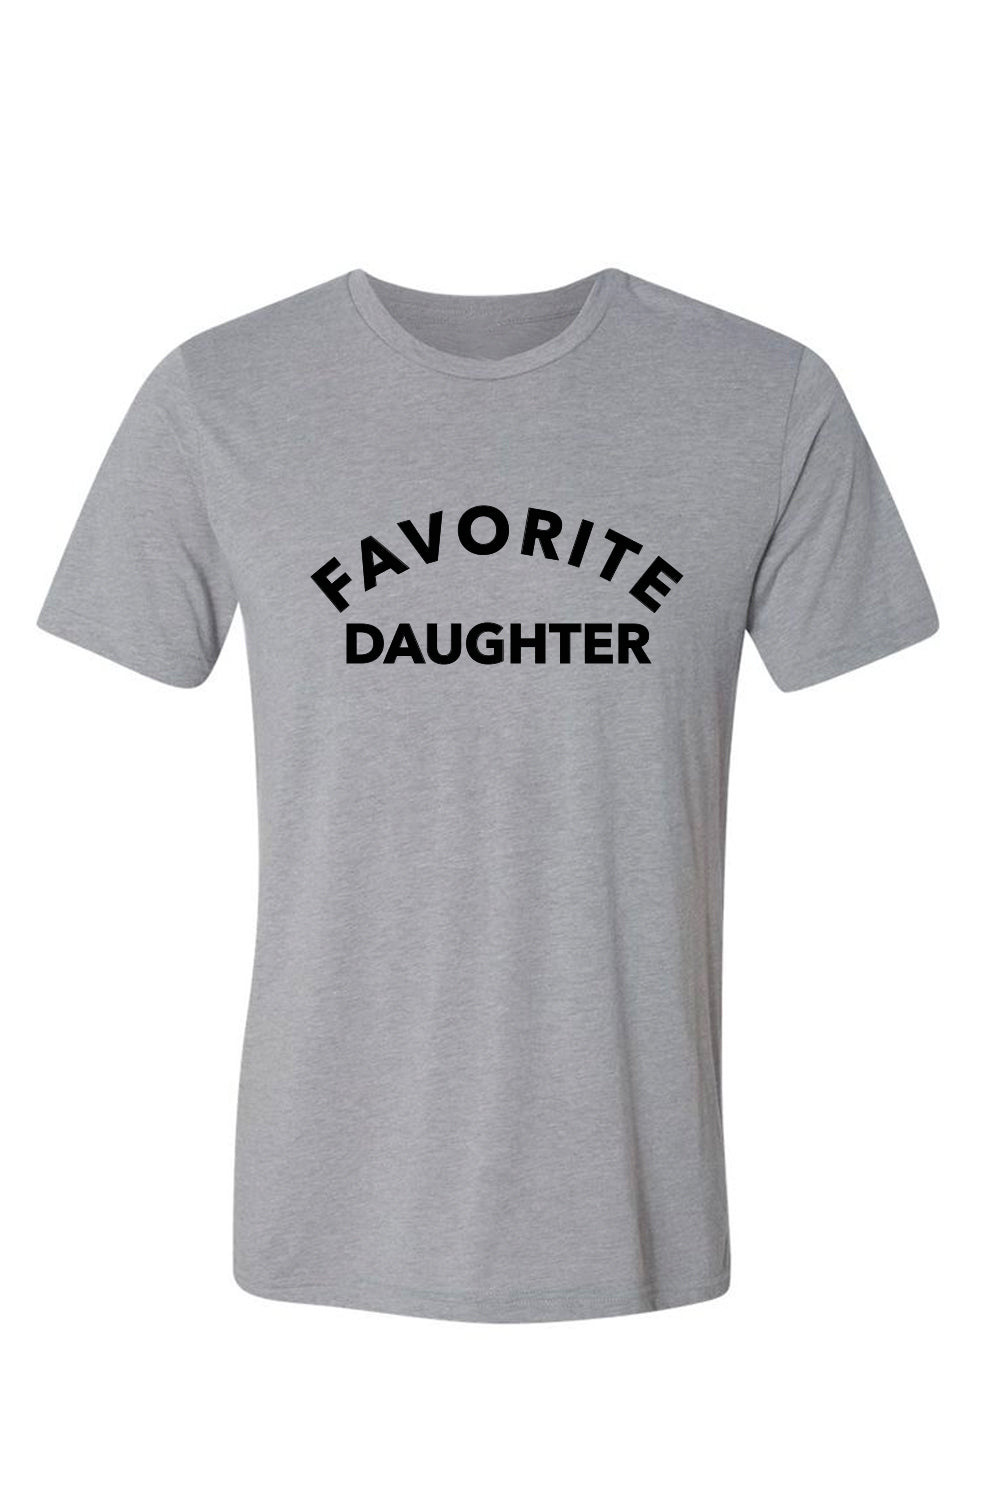 BOWIE TEE - Favorite Daughter